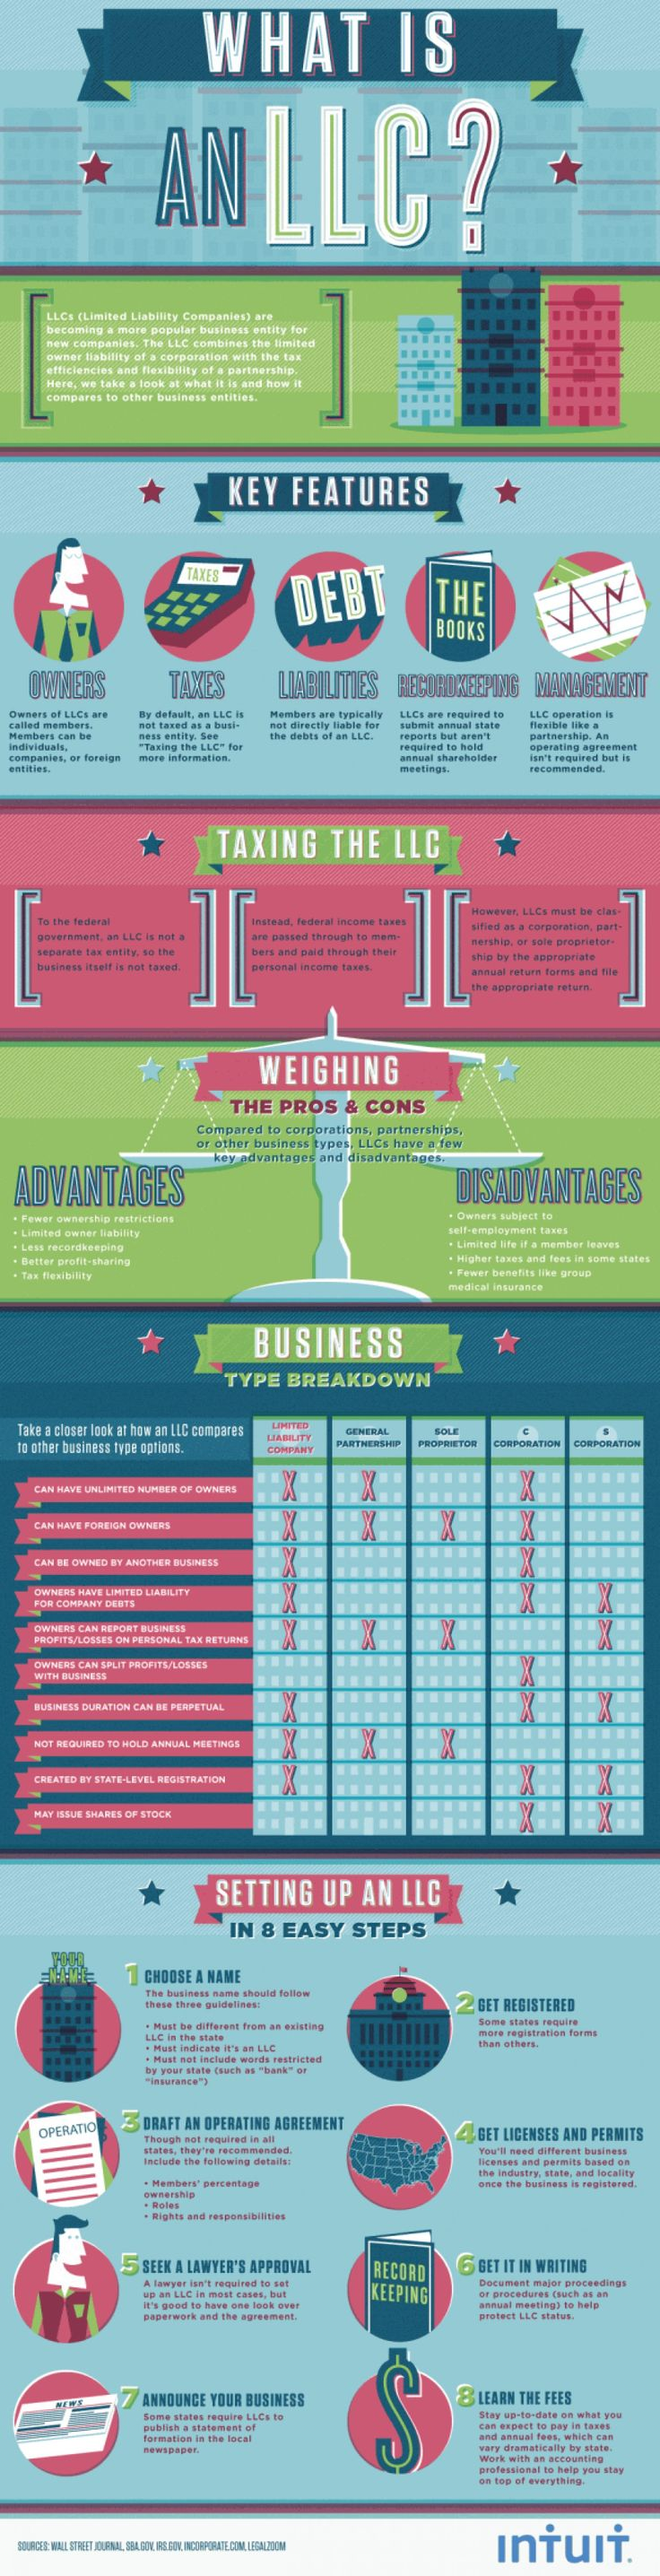 What is an LLC? Infographic